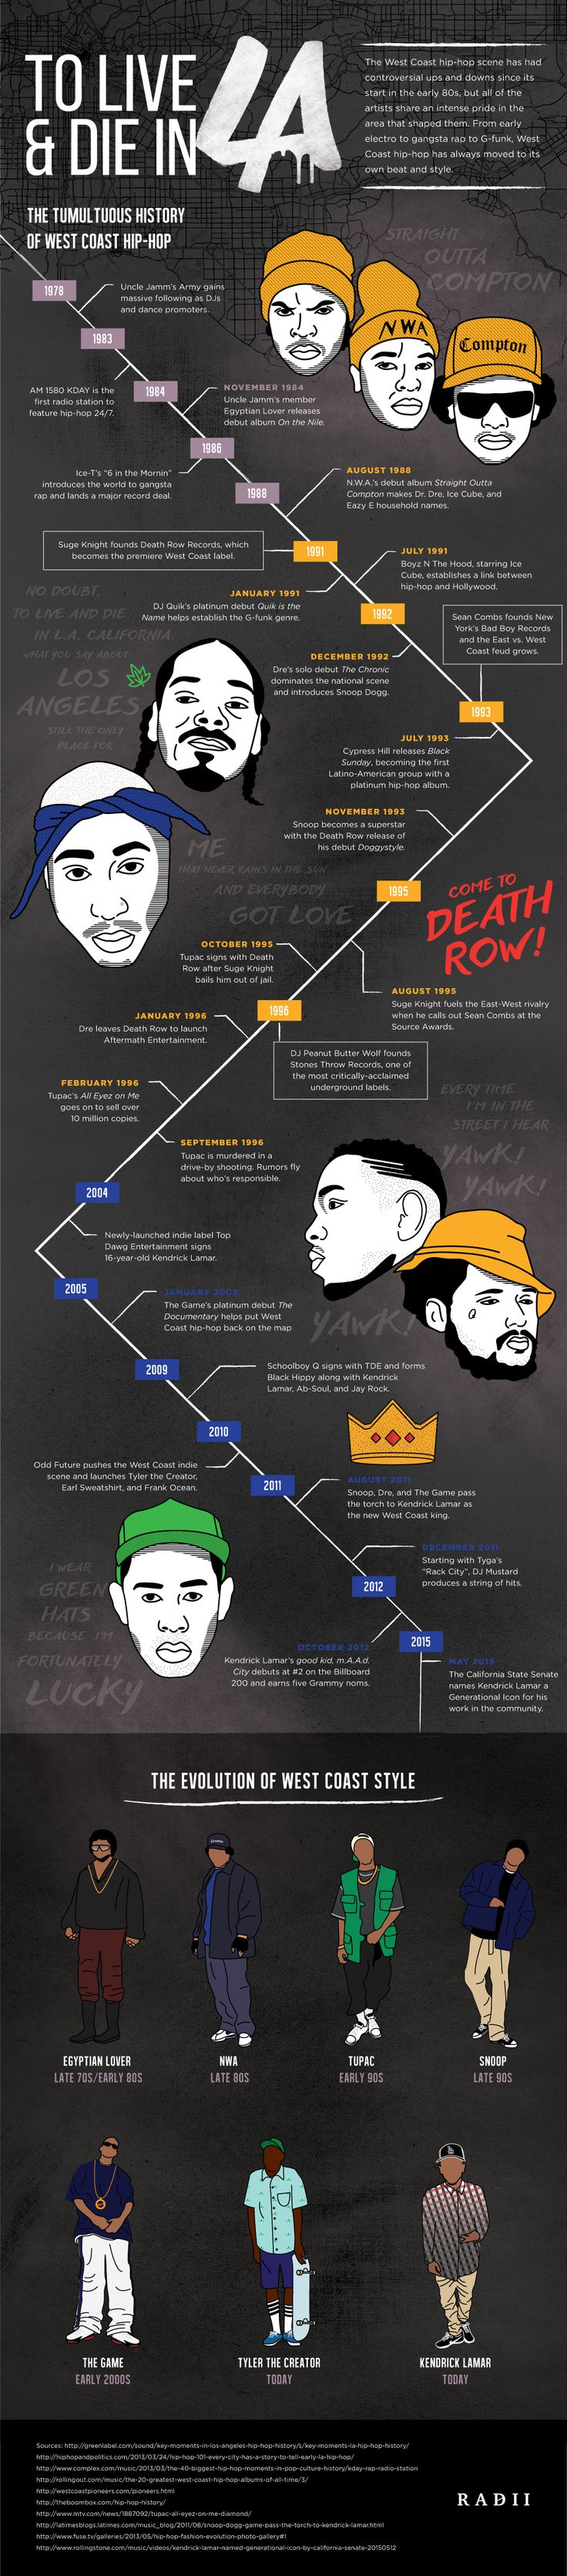 If you love Straight Outta Compton you'll dig this history of hip-hop infographic